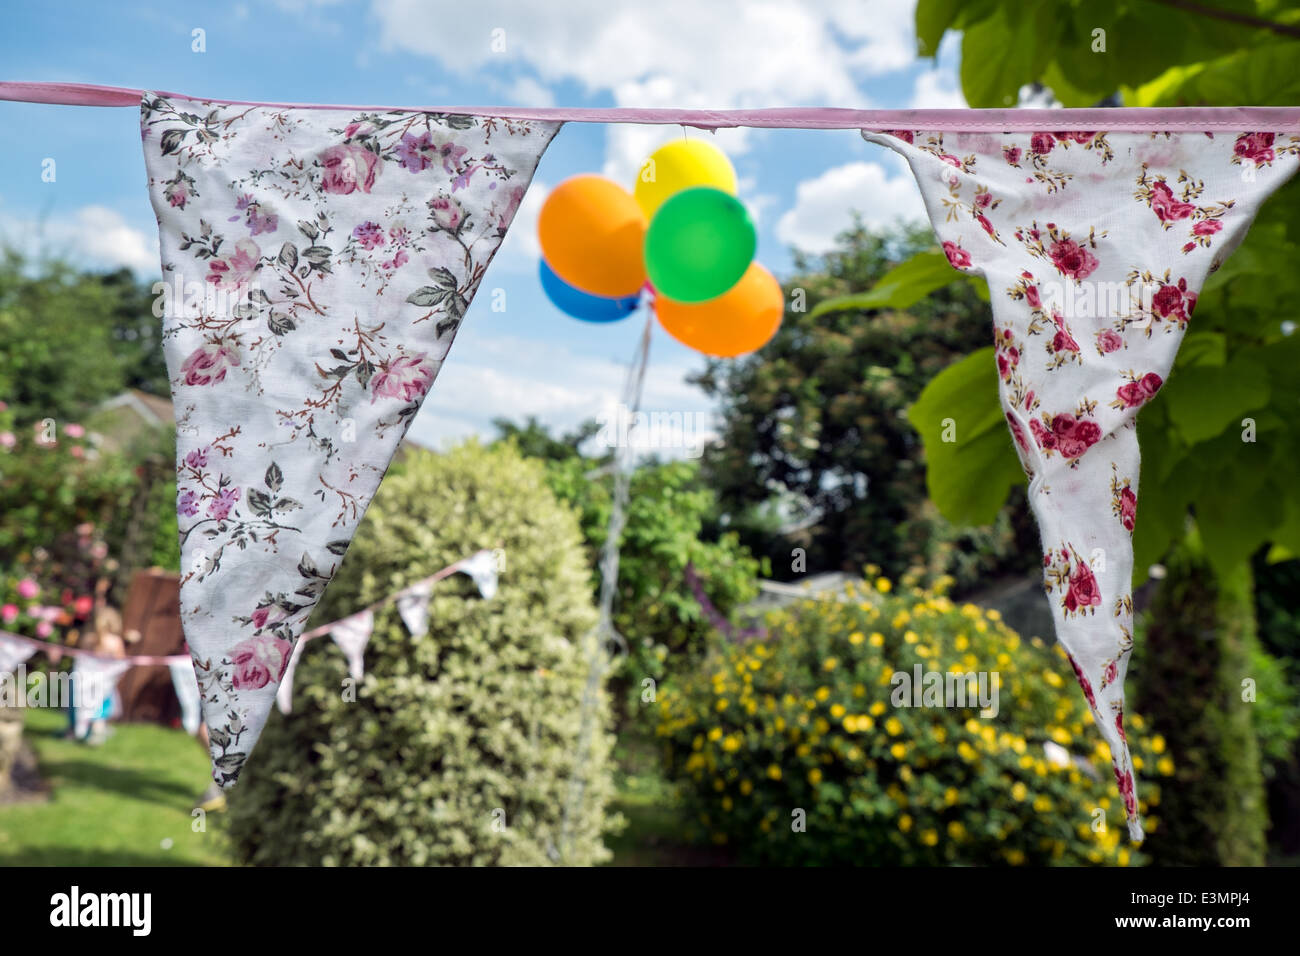 Shabby chic vintage bunting with defocused, colorful balloons on a sunny day at a garden party. - Stock Image